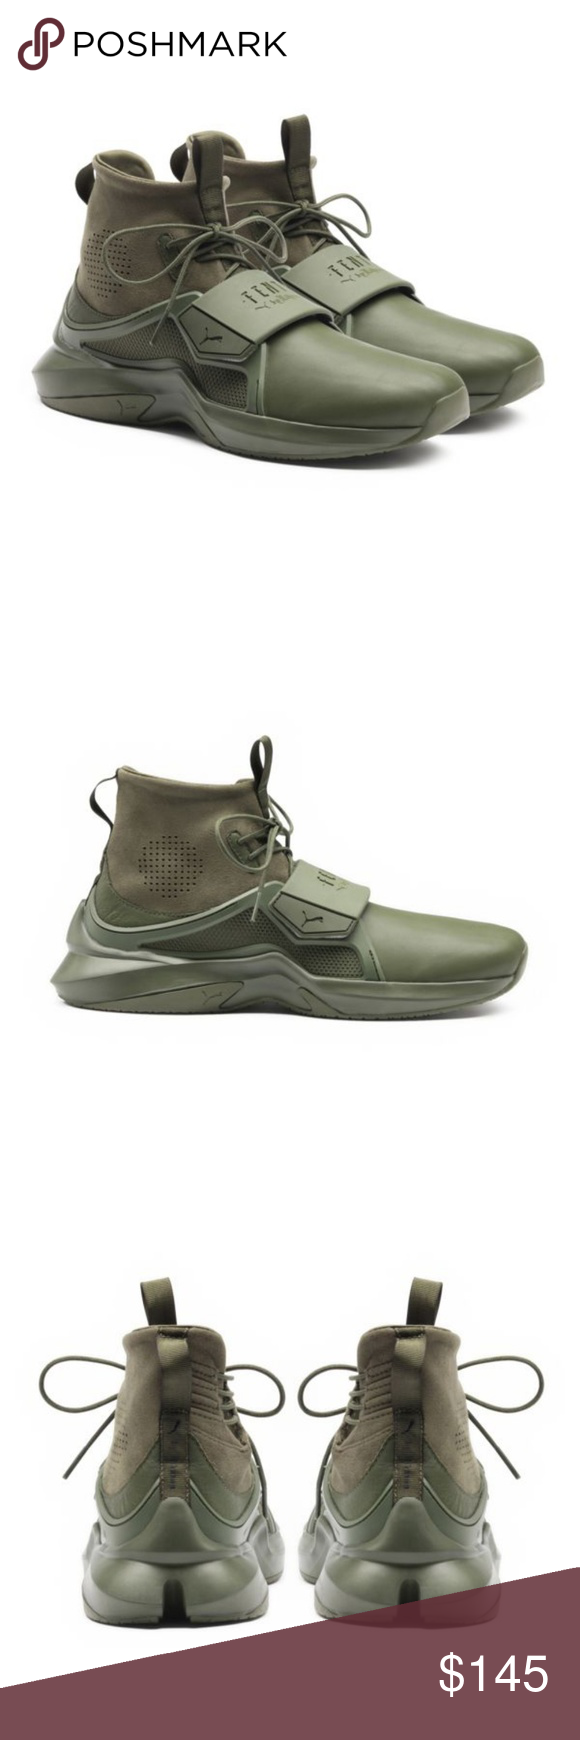 026559745ed388 NWOB Fenty by Rihanna Puma Trainer Hi Sneakers Rihanna s new trainer takes  the concept of runway